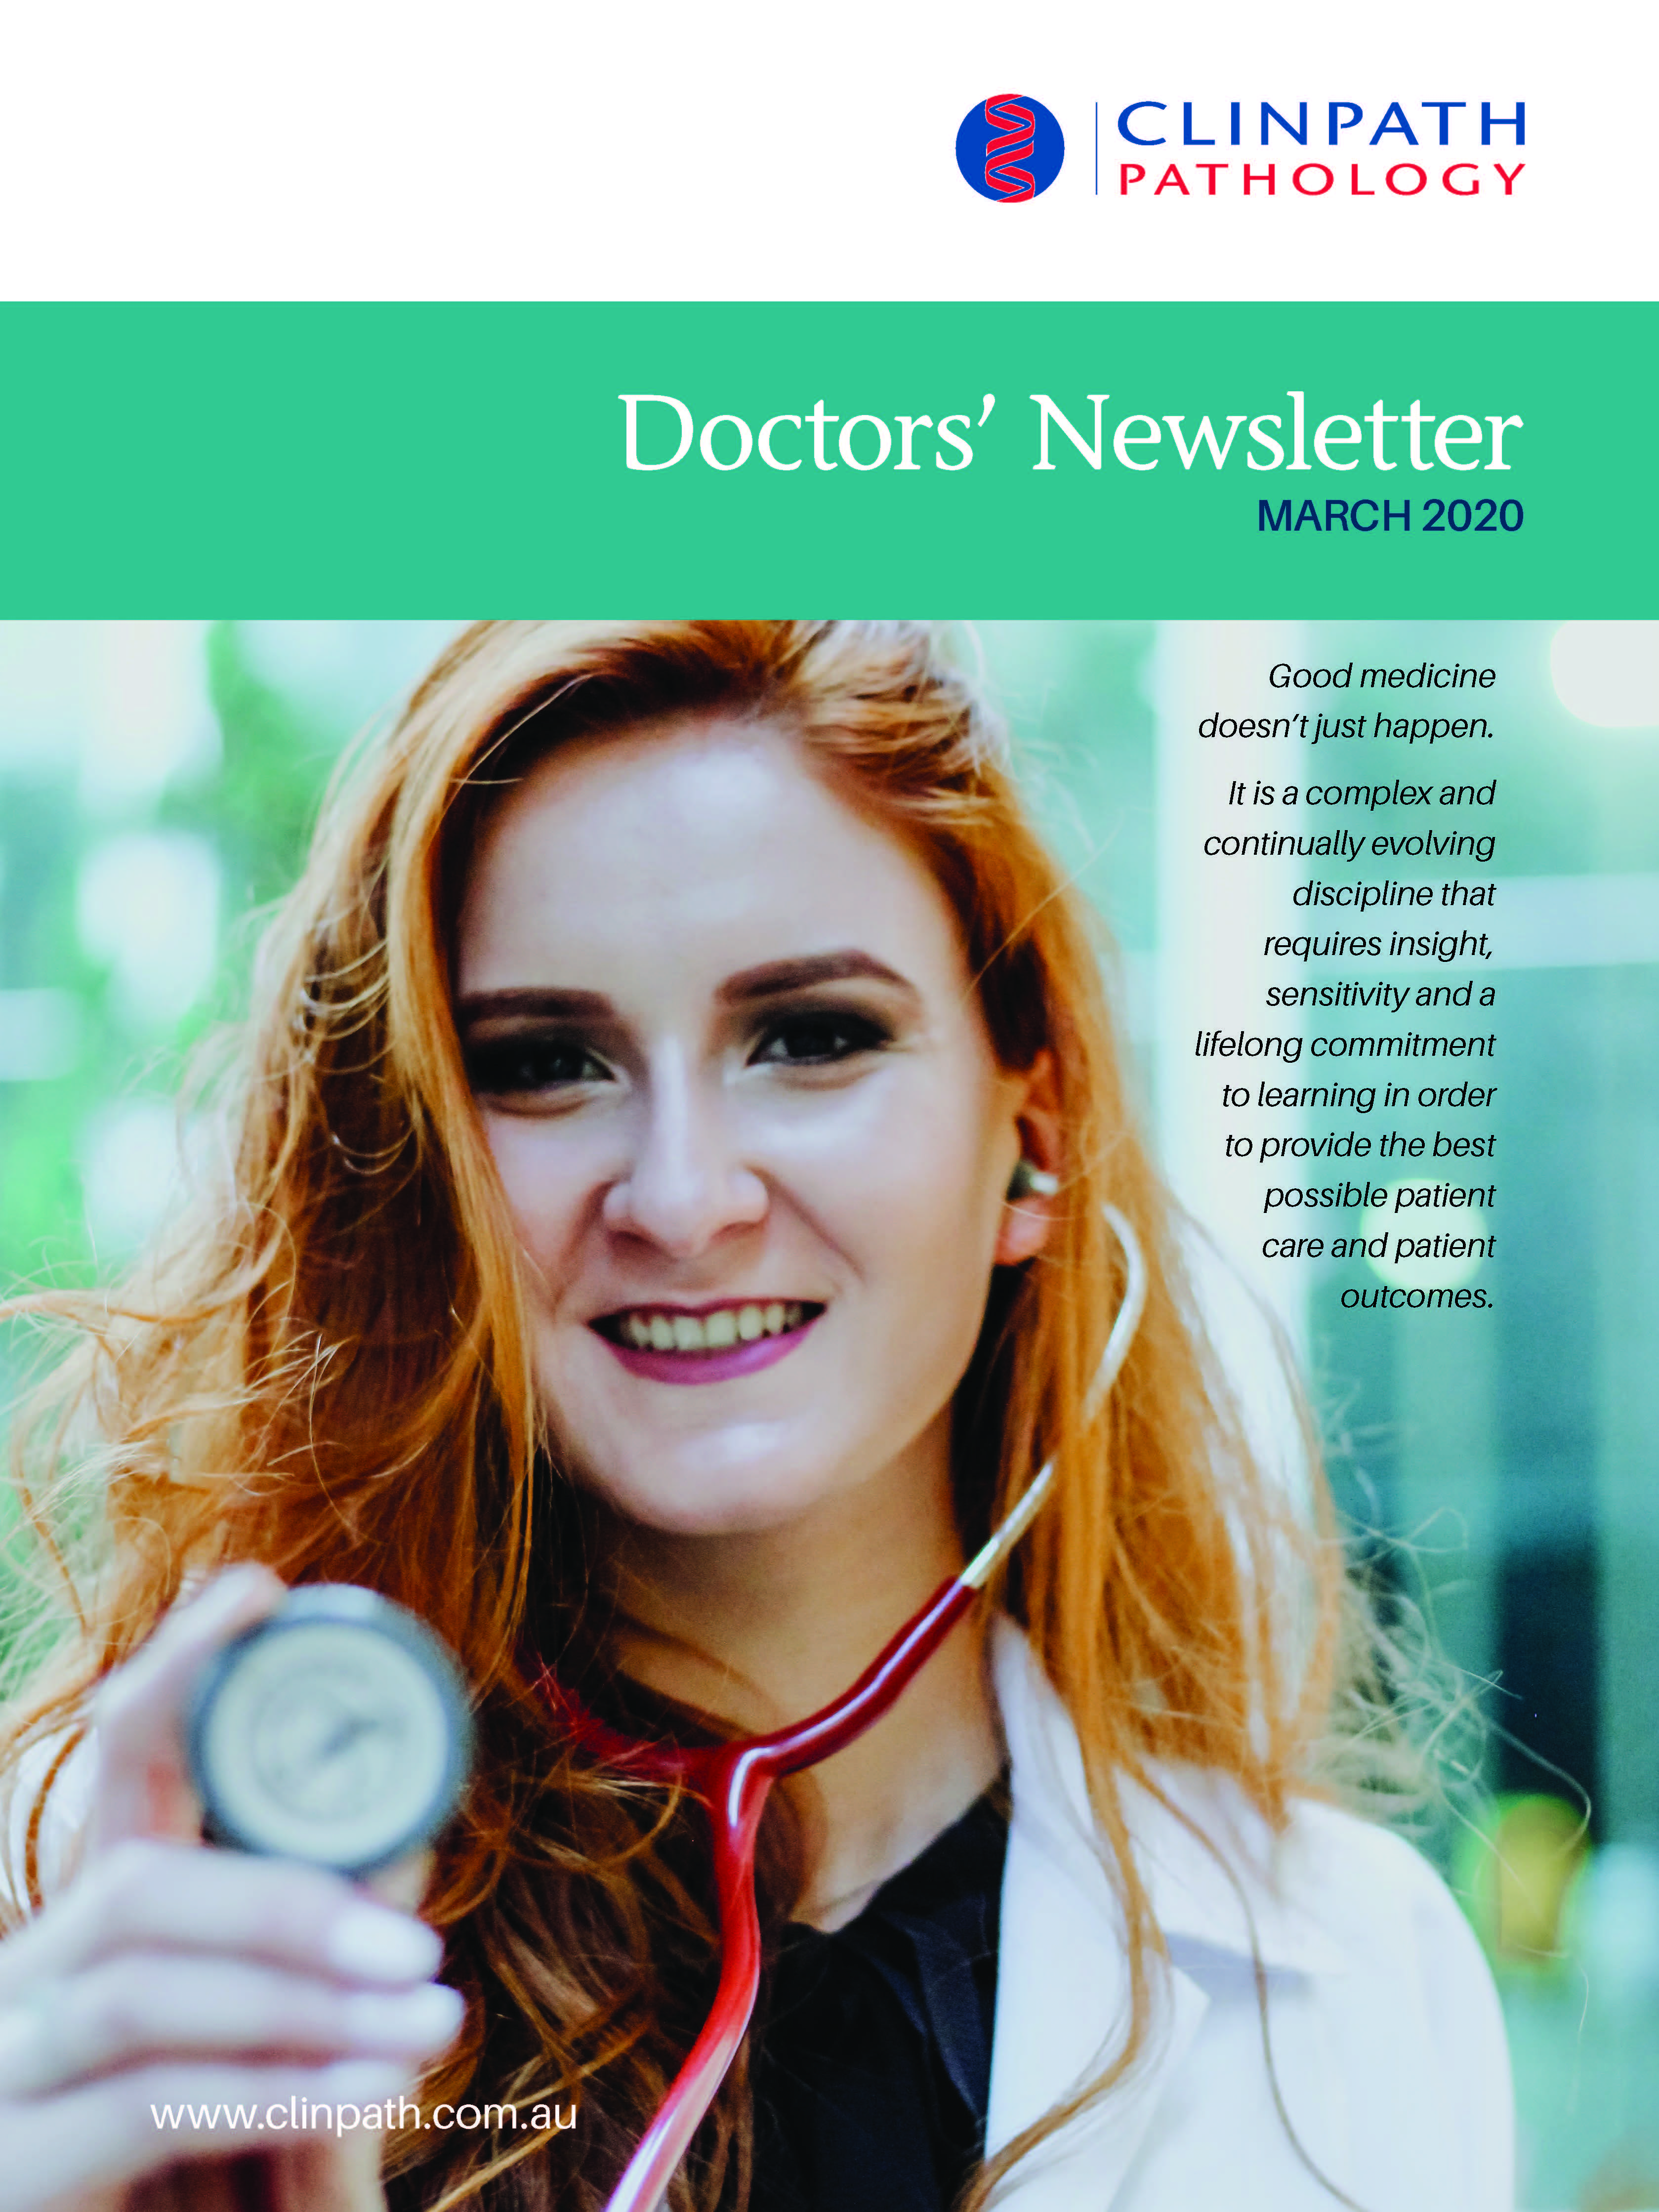 Doctorsnewsletter Issue5 Mar2020 Page 01